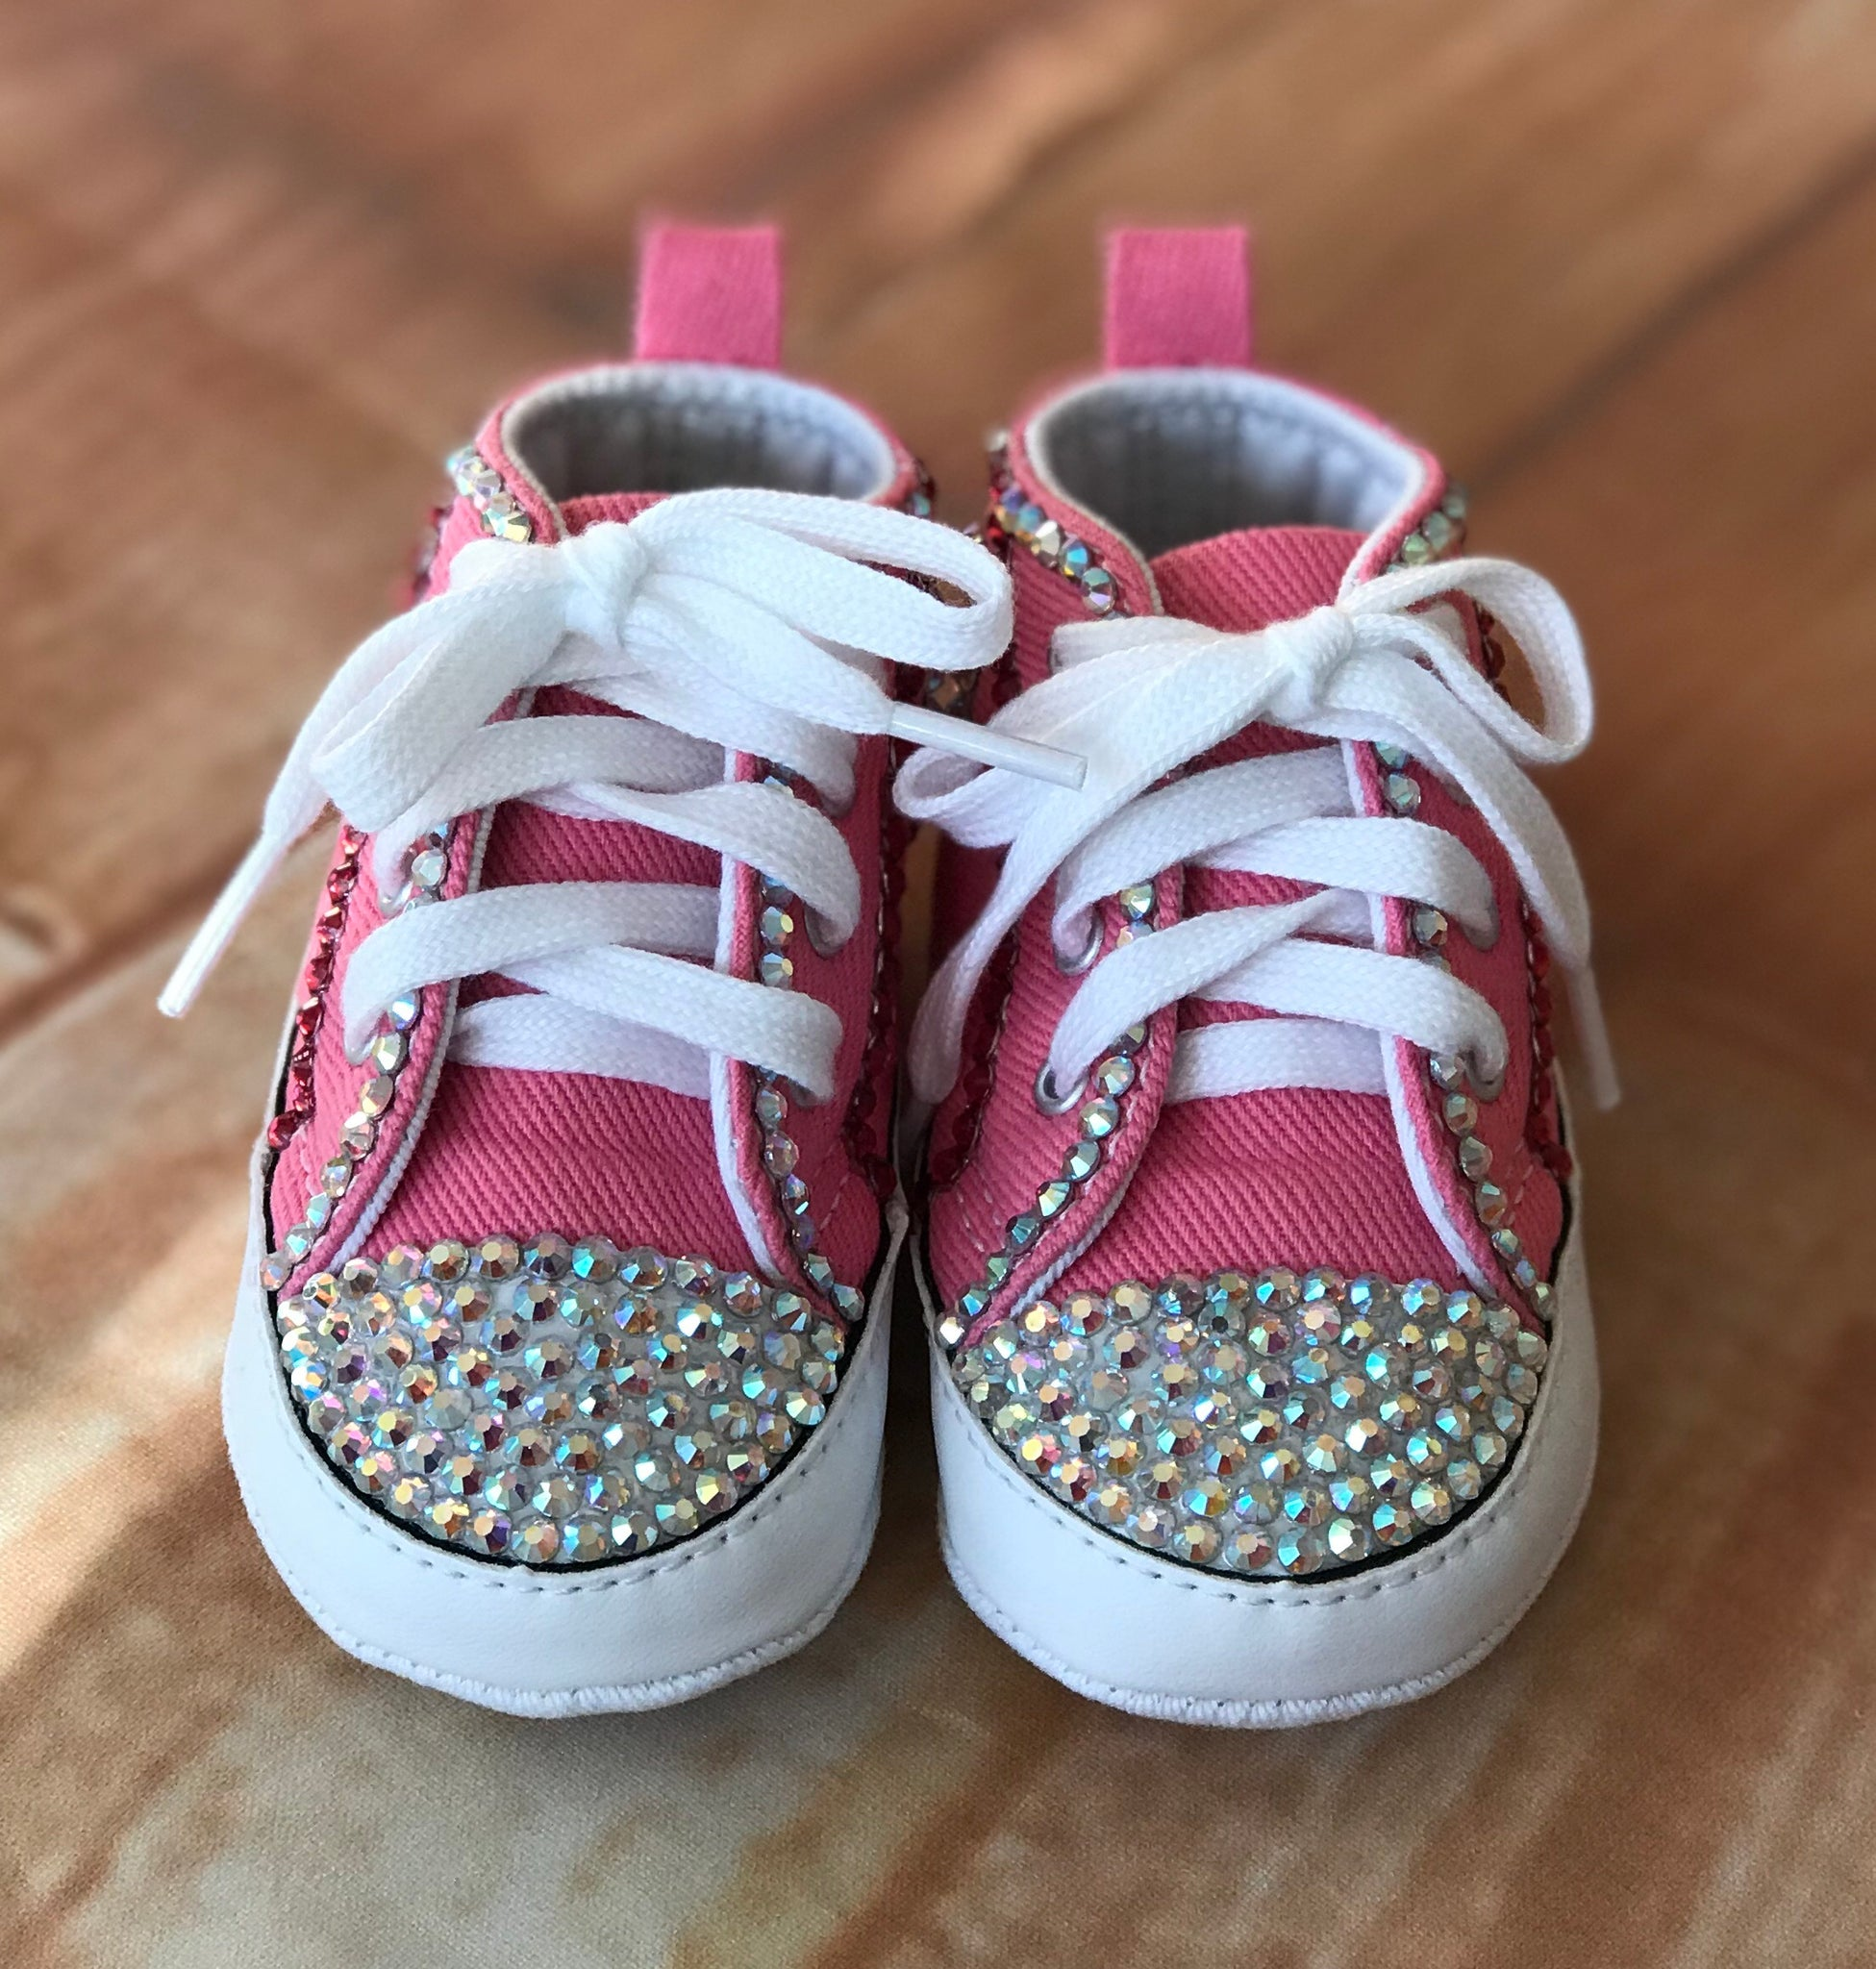 c5a3b3c6cc3 Blinged Pink Baby Converse Sneakers